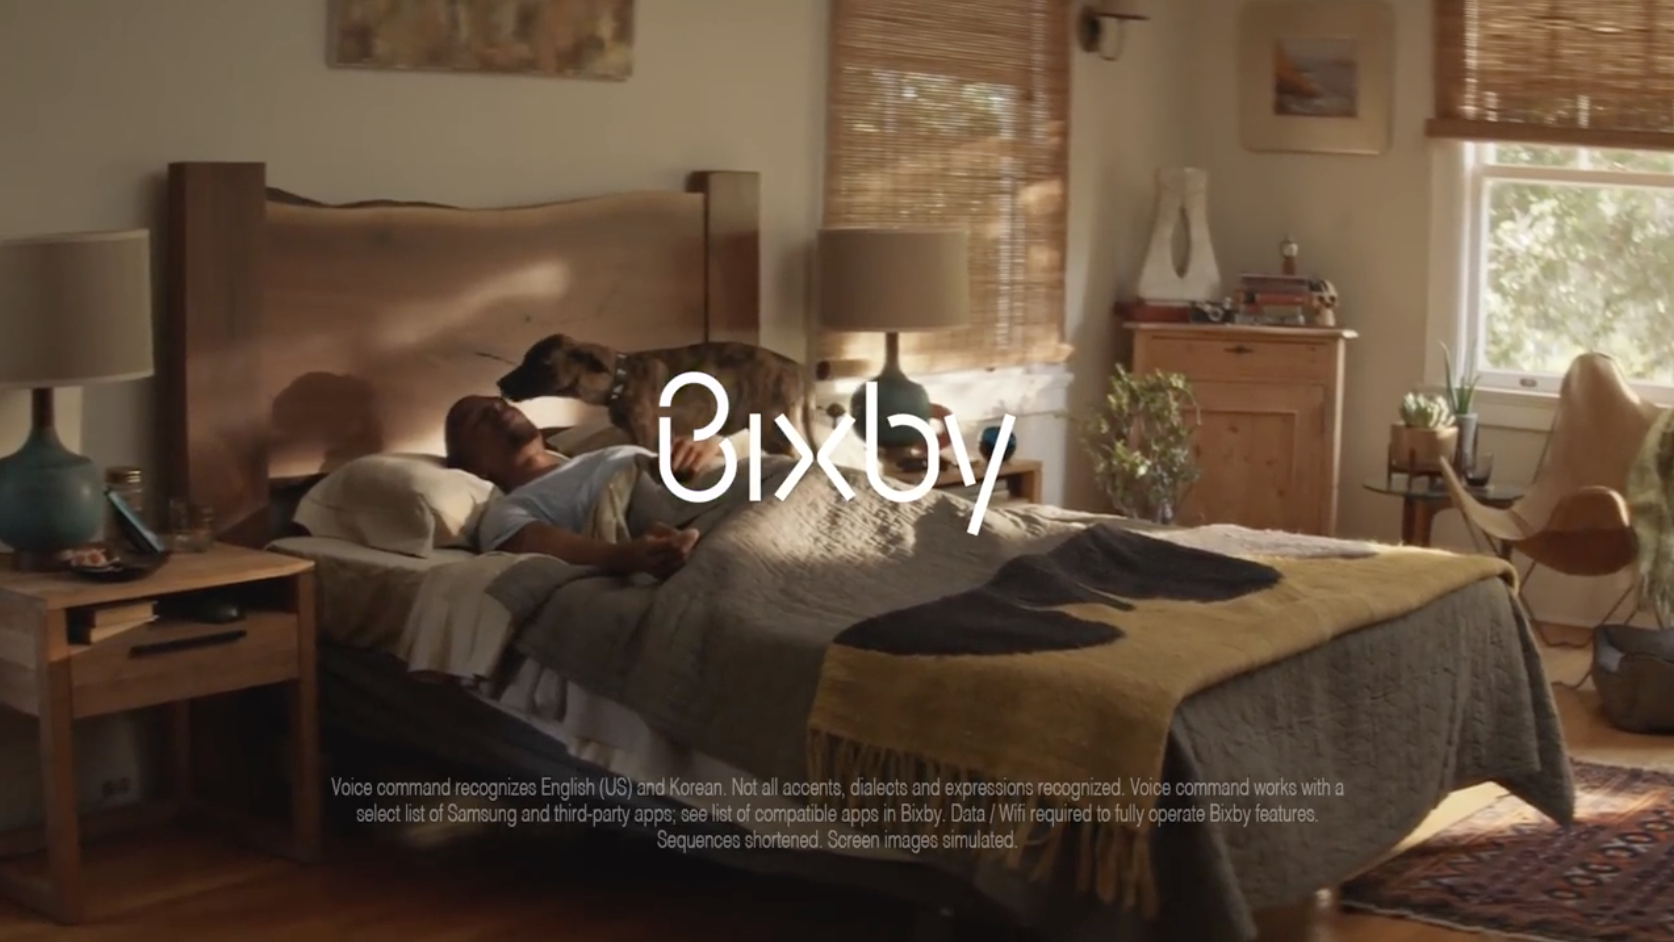 Kevin L. Walker - Samsung Bixby/Galaxy - Rise N Shine - National Commercial